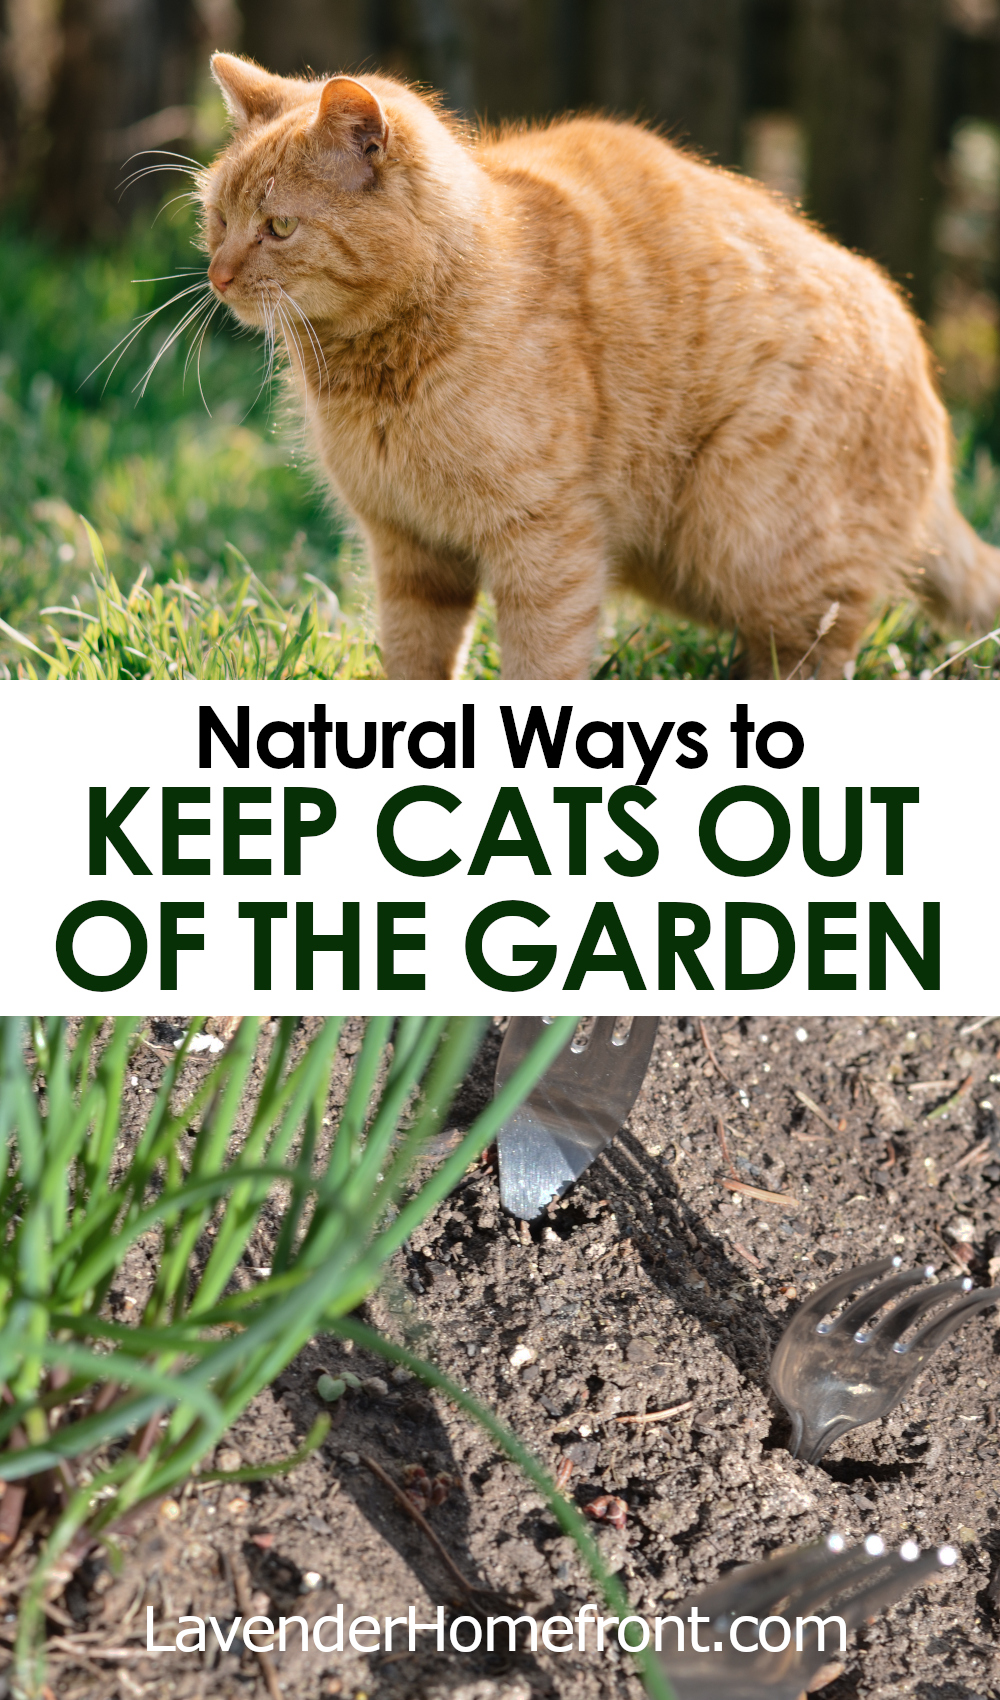 How to keep cats out of you garden naturally pinnable image.